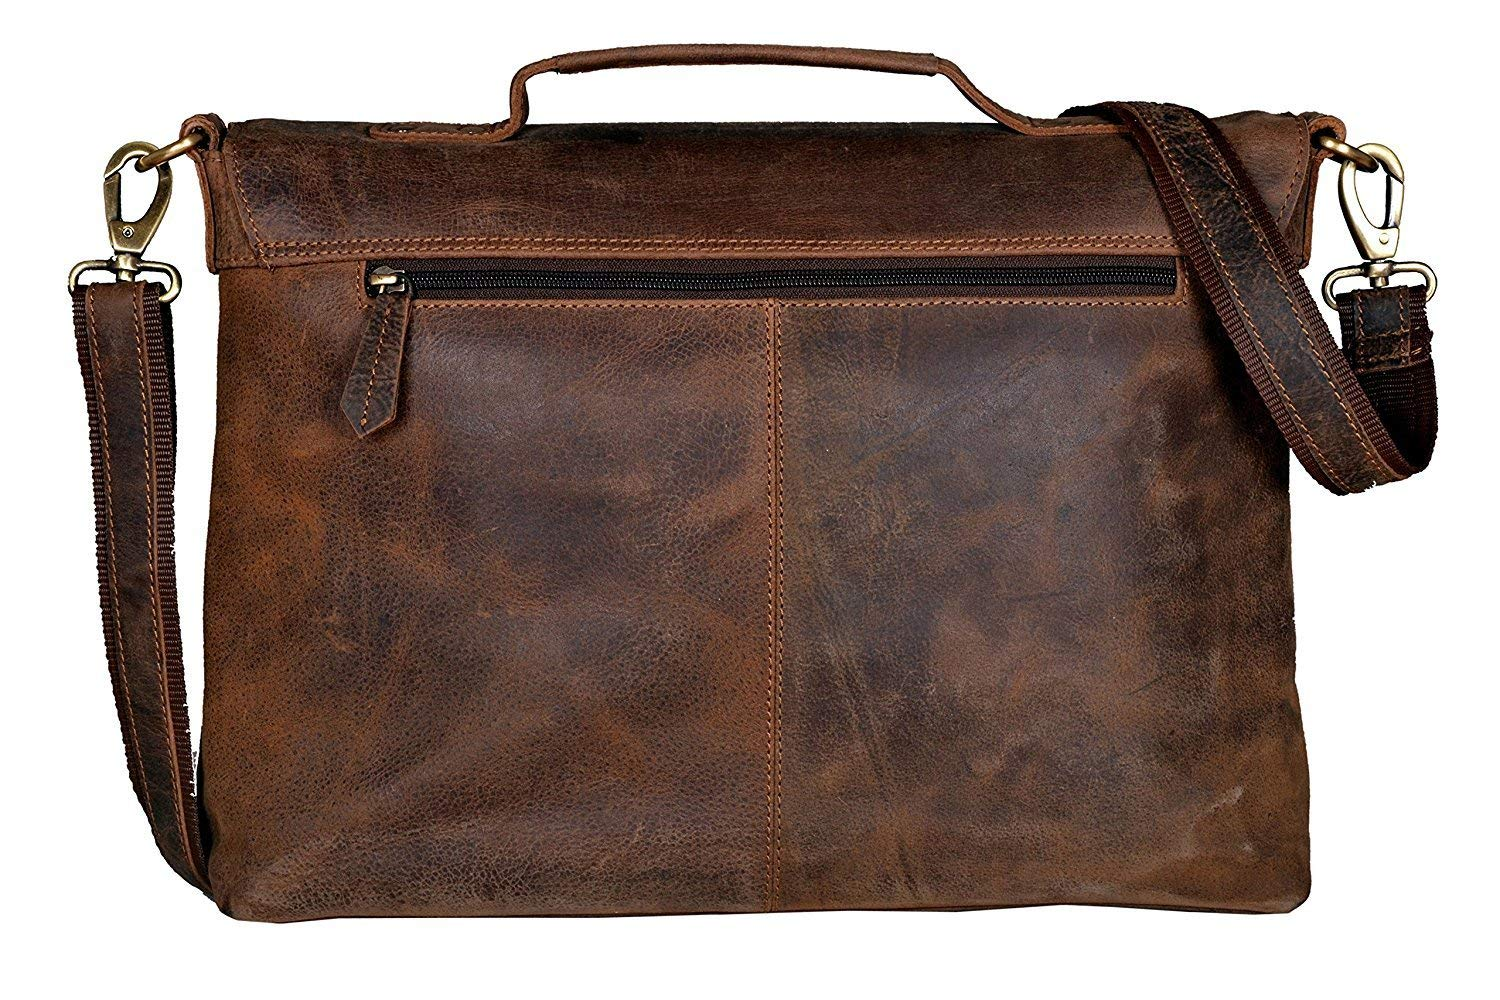 18 Inch Retro Buffalo Hunter Leather Laptop Messenger Bag Office Briefcase College Bag for Men and Women by handolederco. (Image #3)